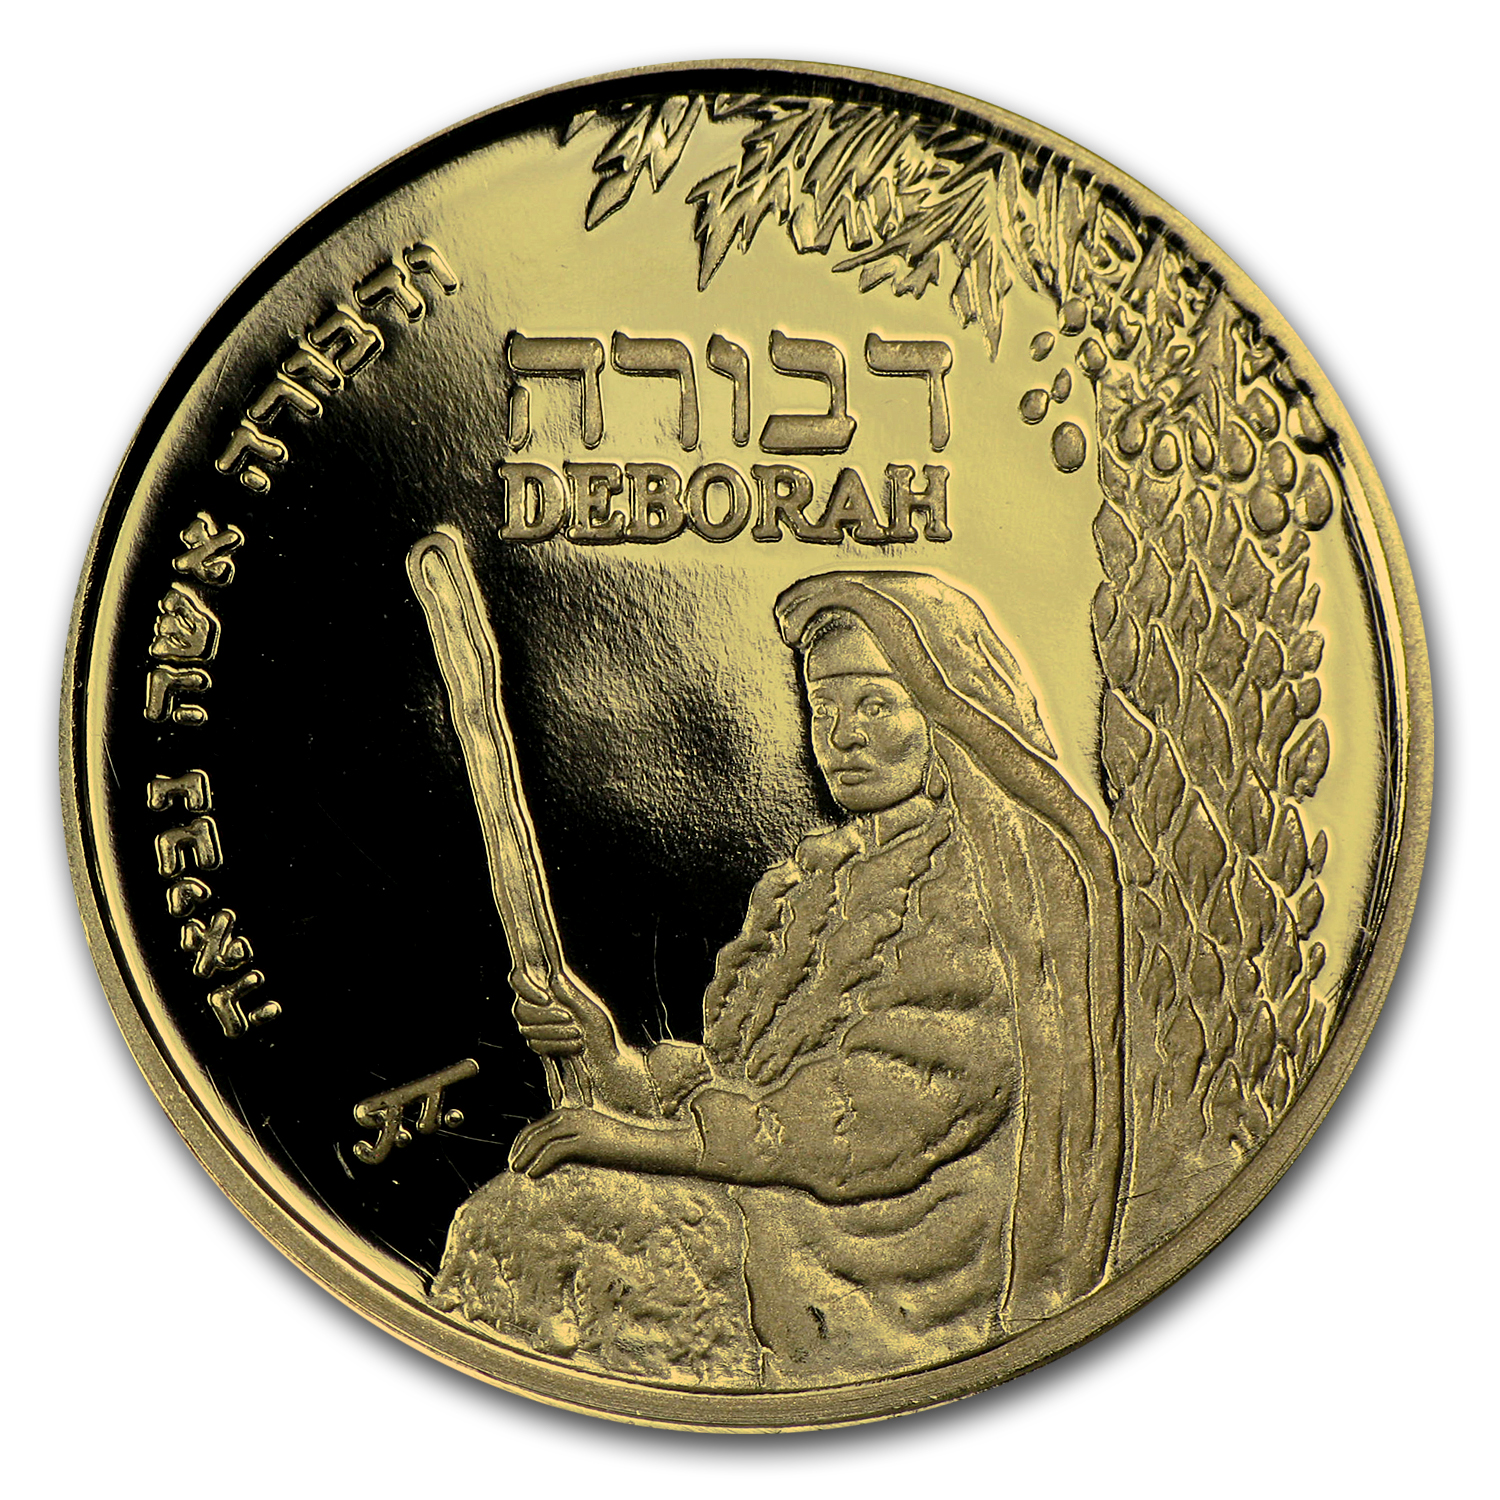 2011 Israel Proof Gold Medal Deborah (AGW .188 oz)